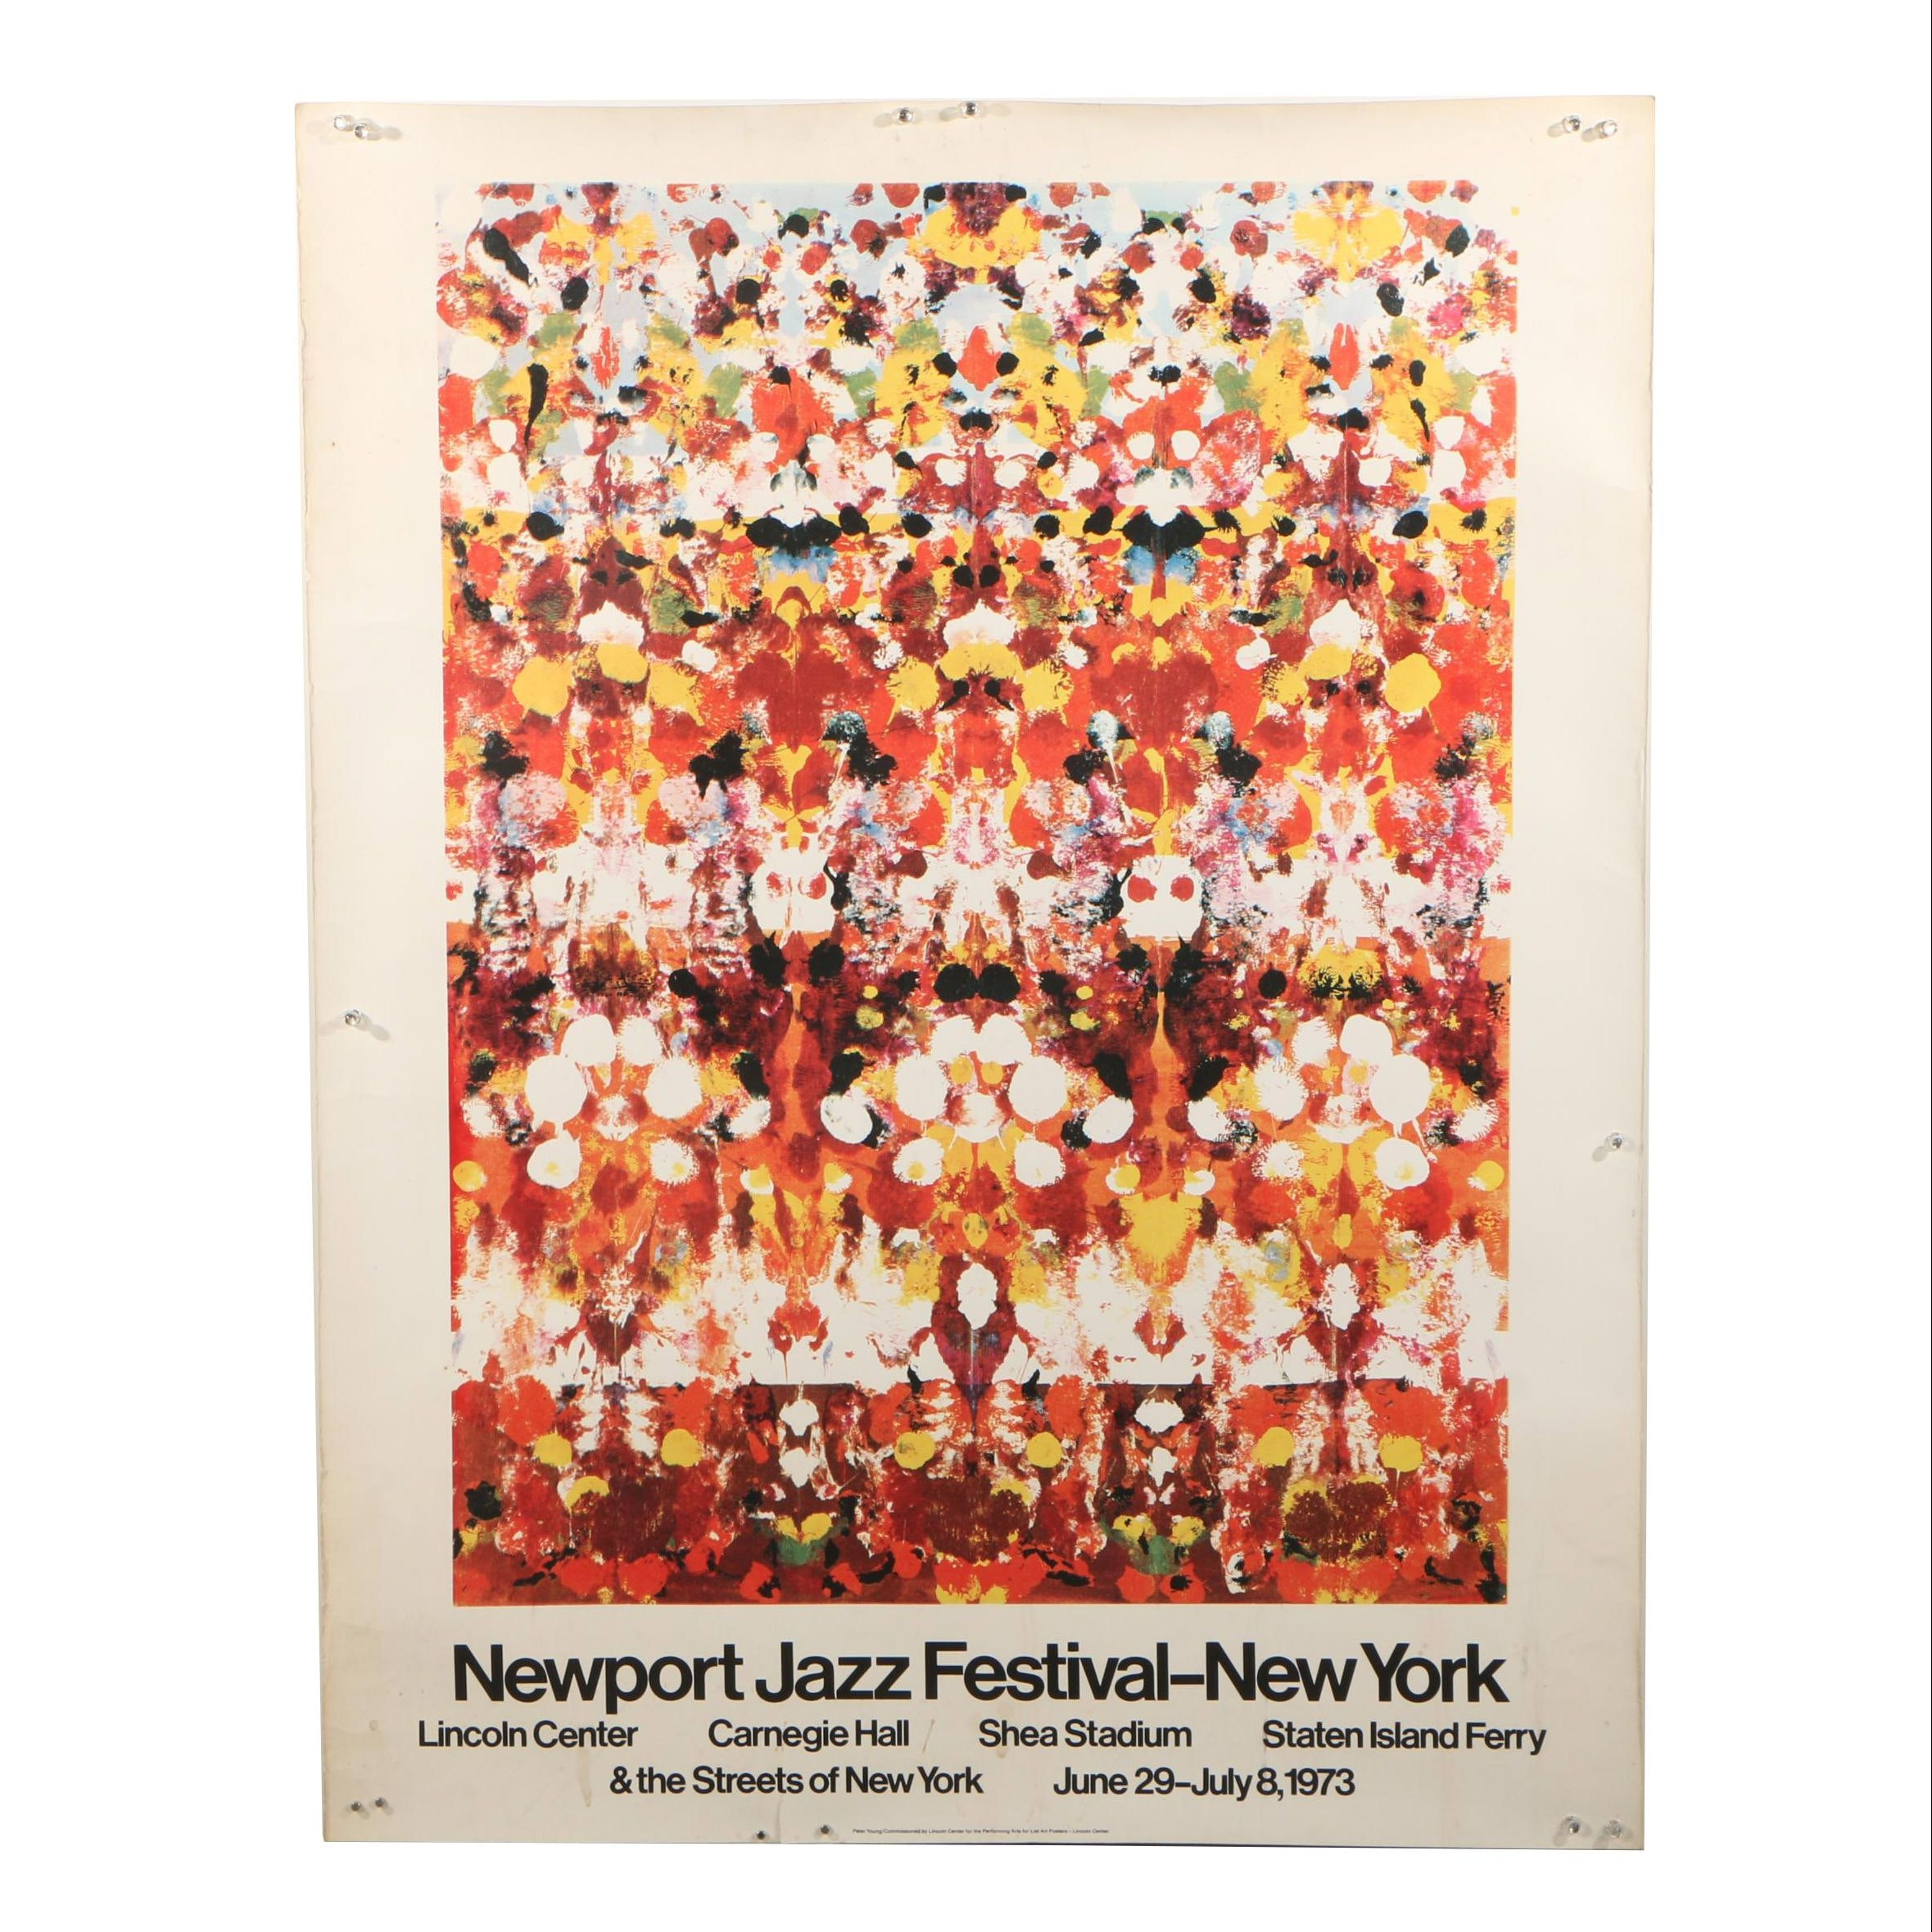 1973 Newport Jazz Festival - New York Offset Lithograph Poster